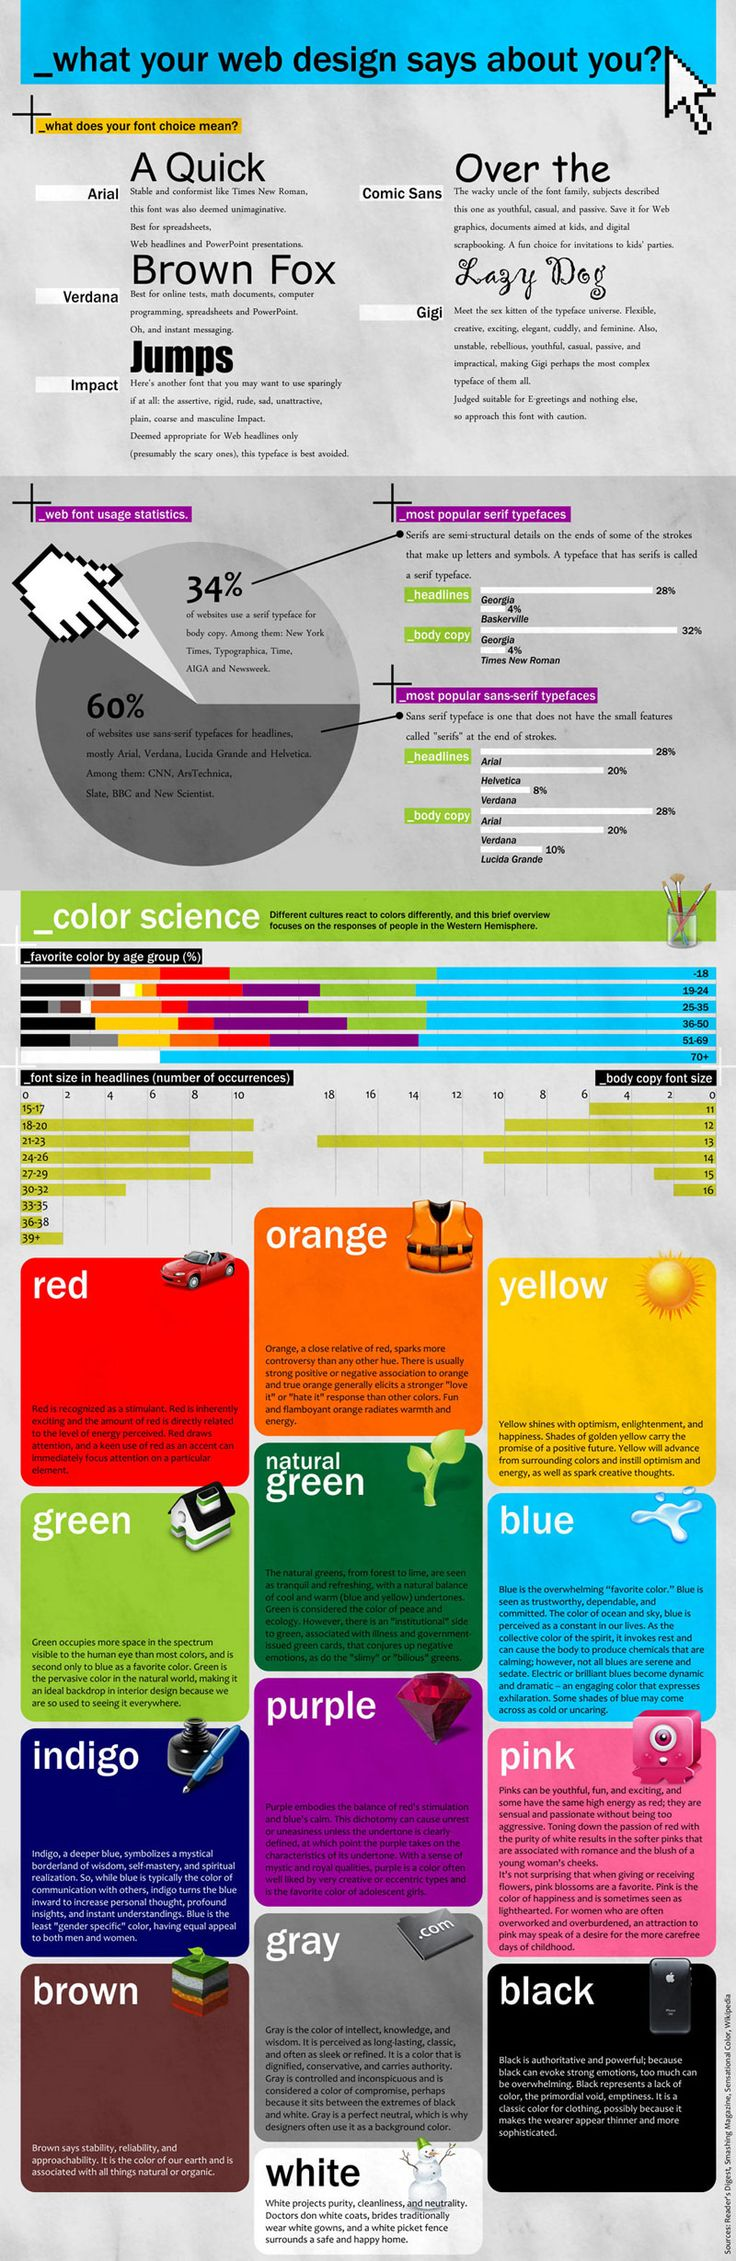 [Infographic]  What Your Web Design Says About You.  Color chart to help you choose colors according to the emotion you wish to convey.  Font tips - choose the right font for th right job.